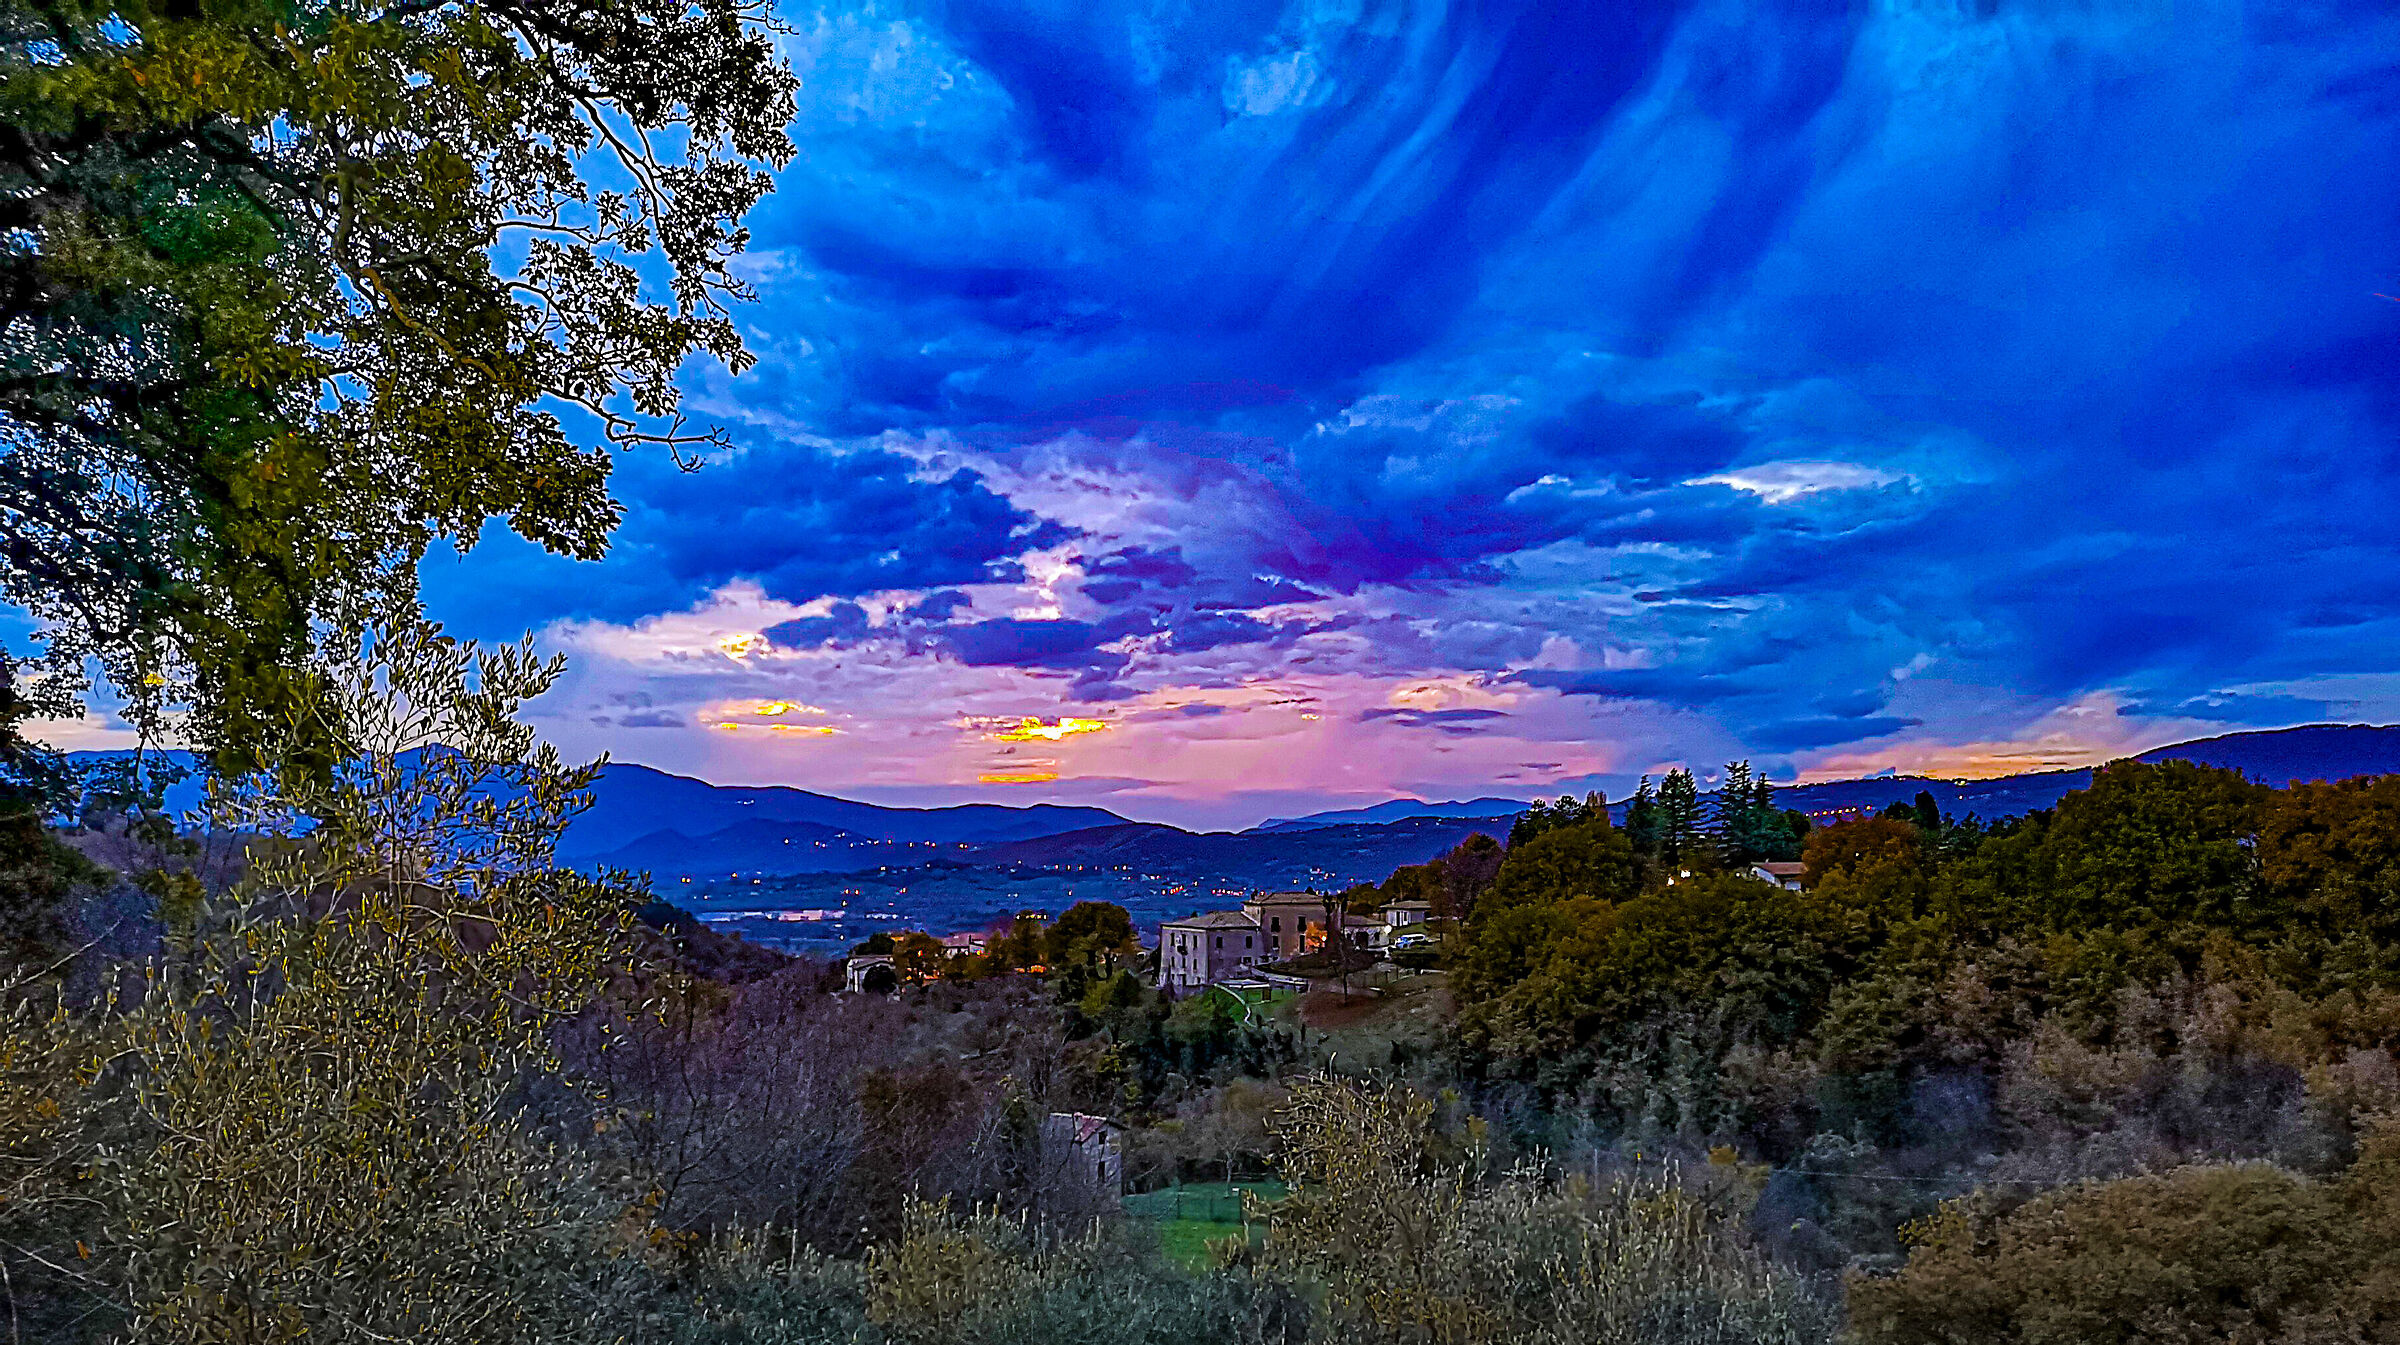 Blue sunset at Cantalice...